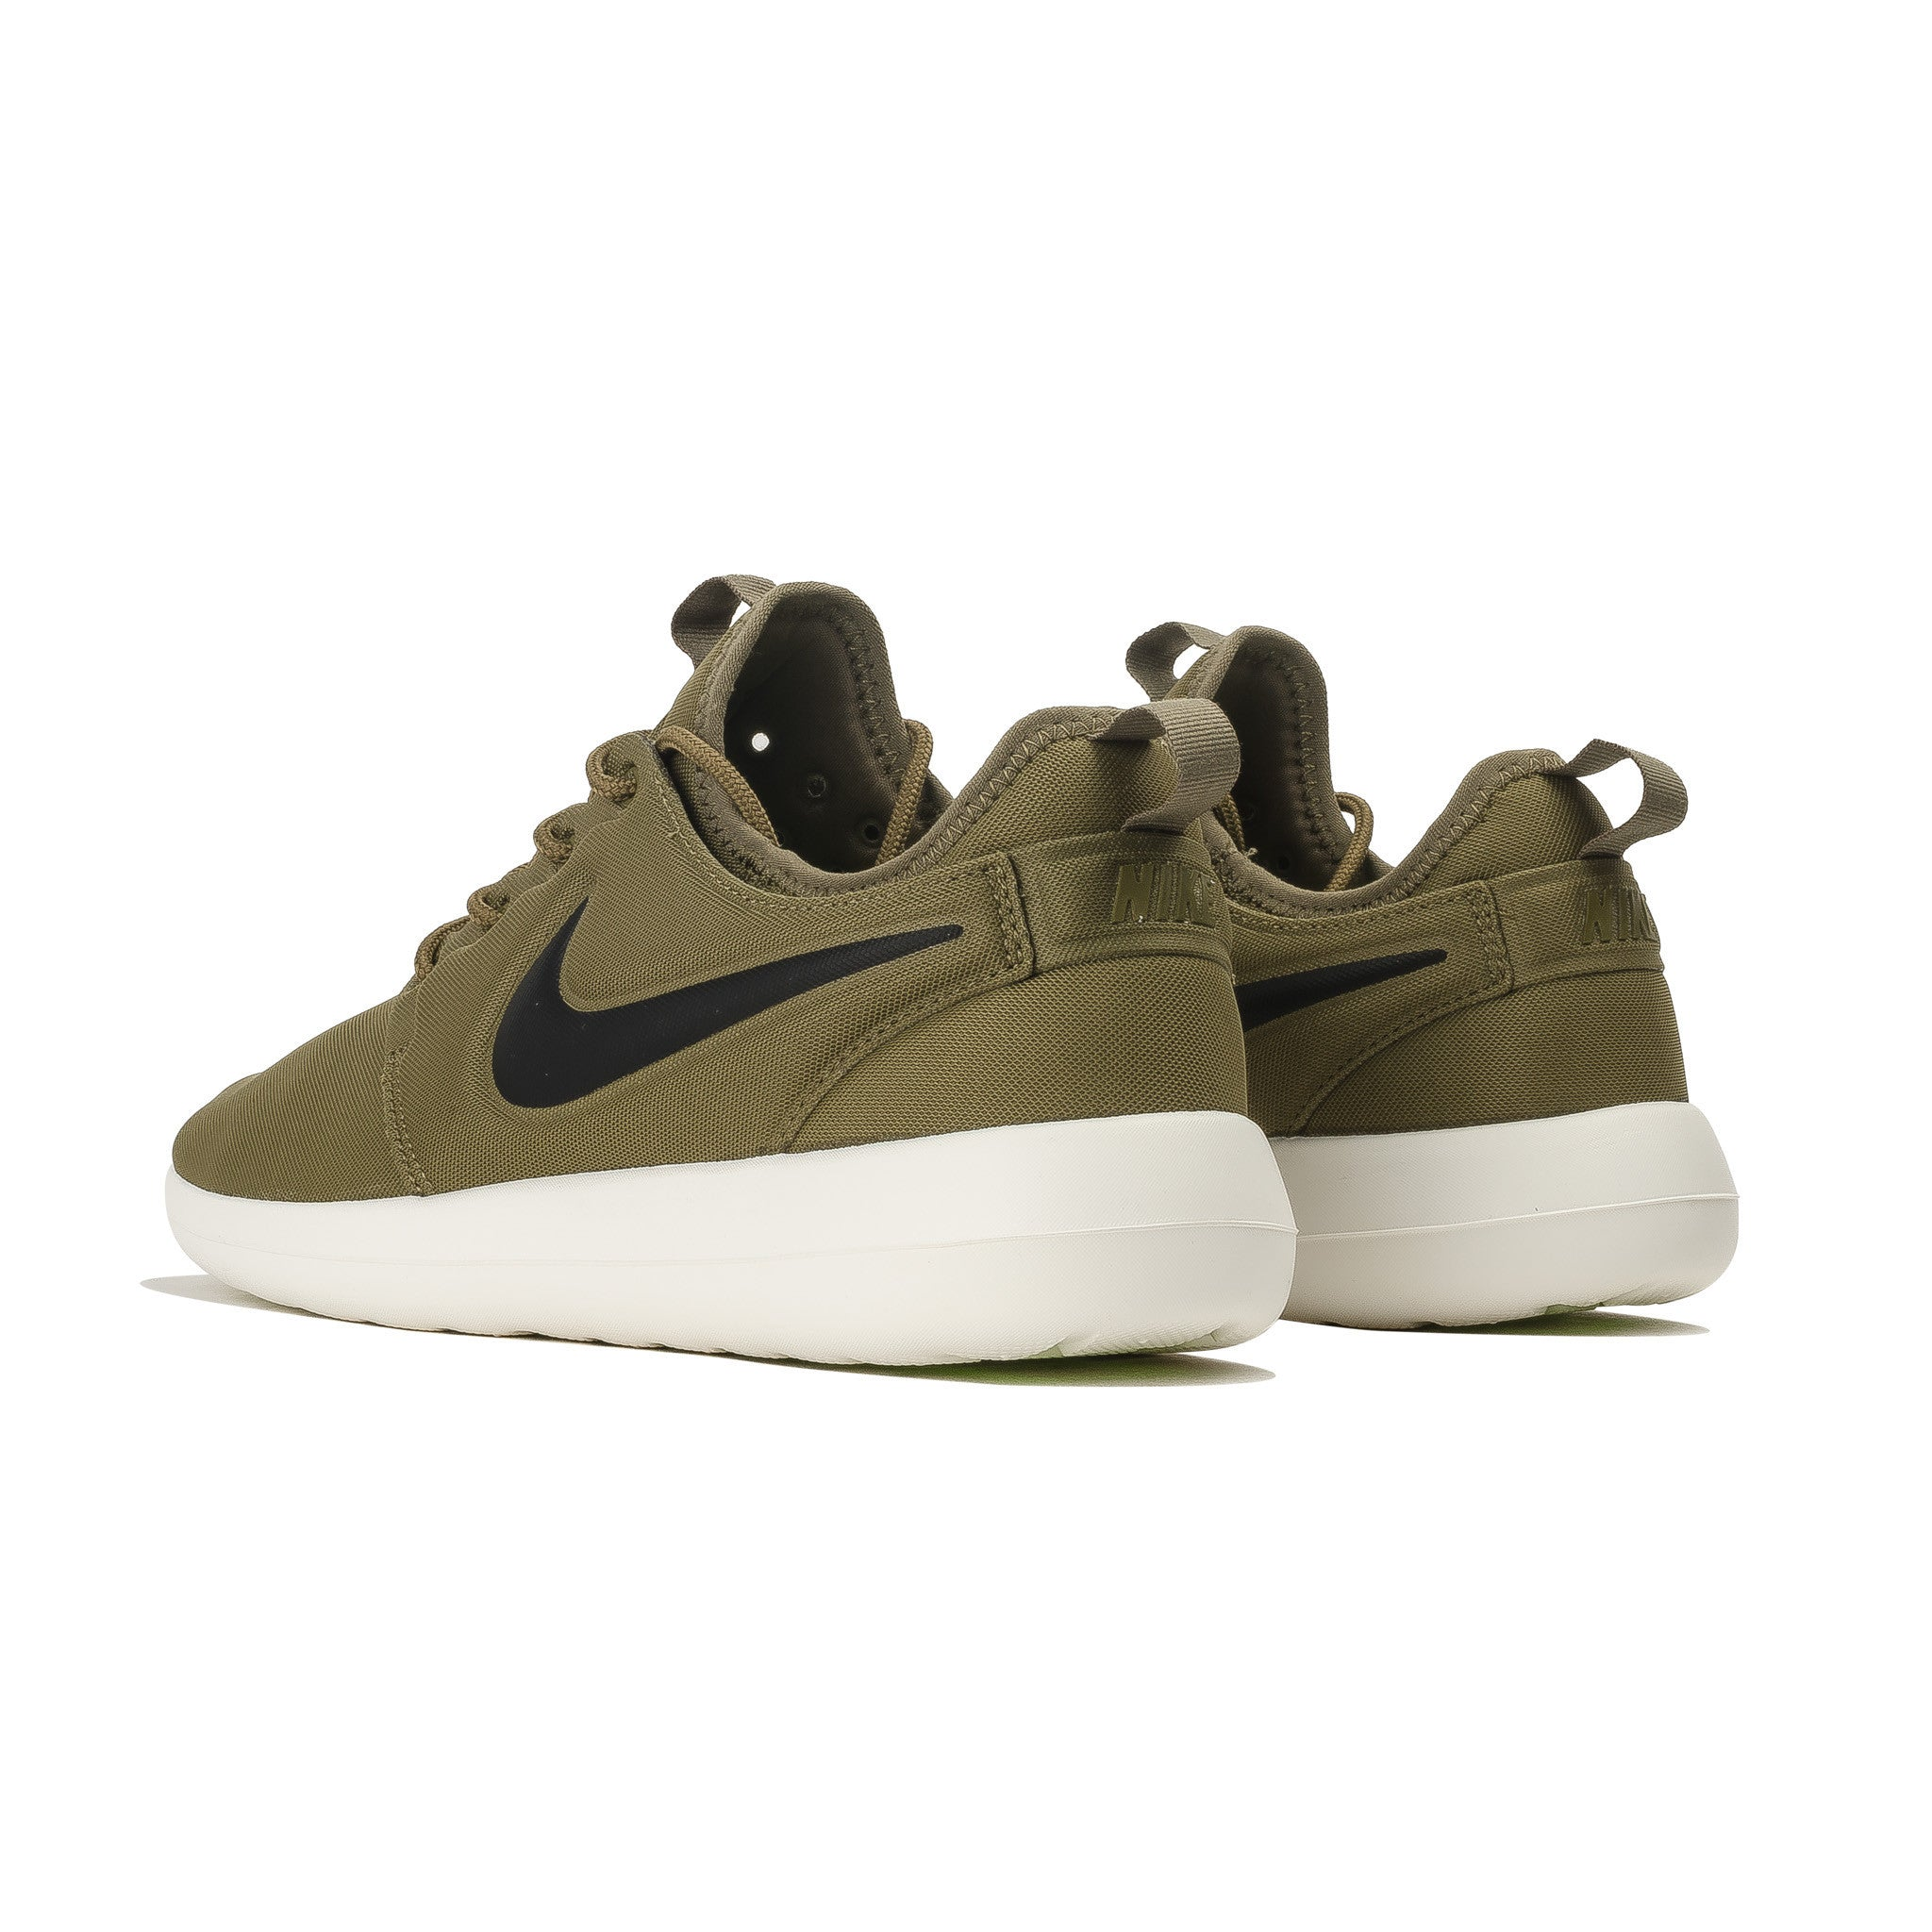 Nike Roshe Two 844656-200 Iguaana